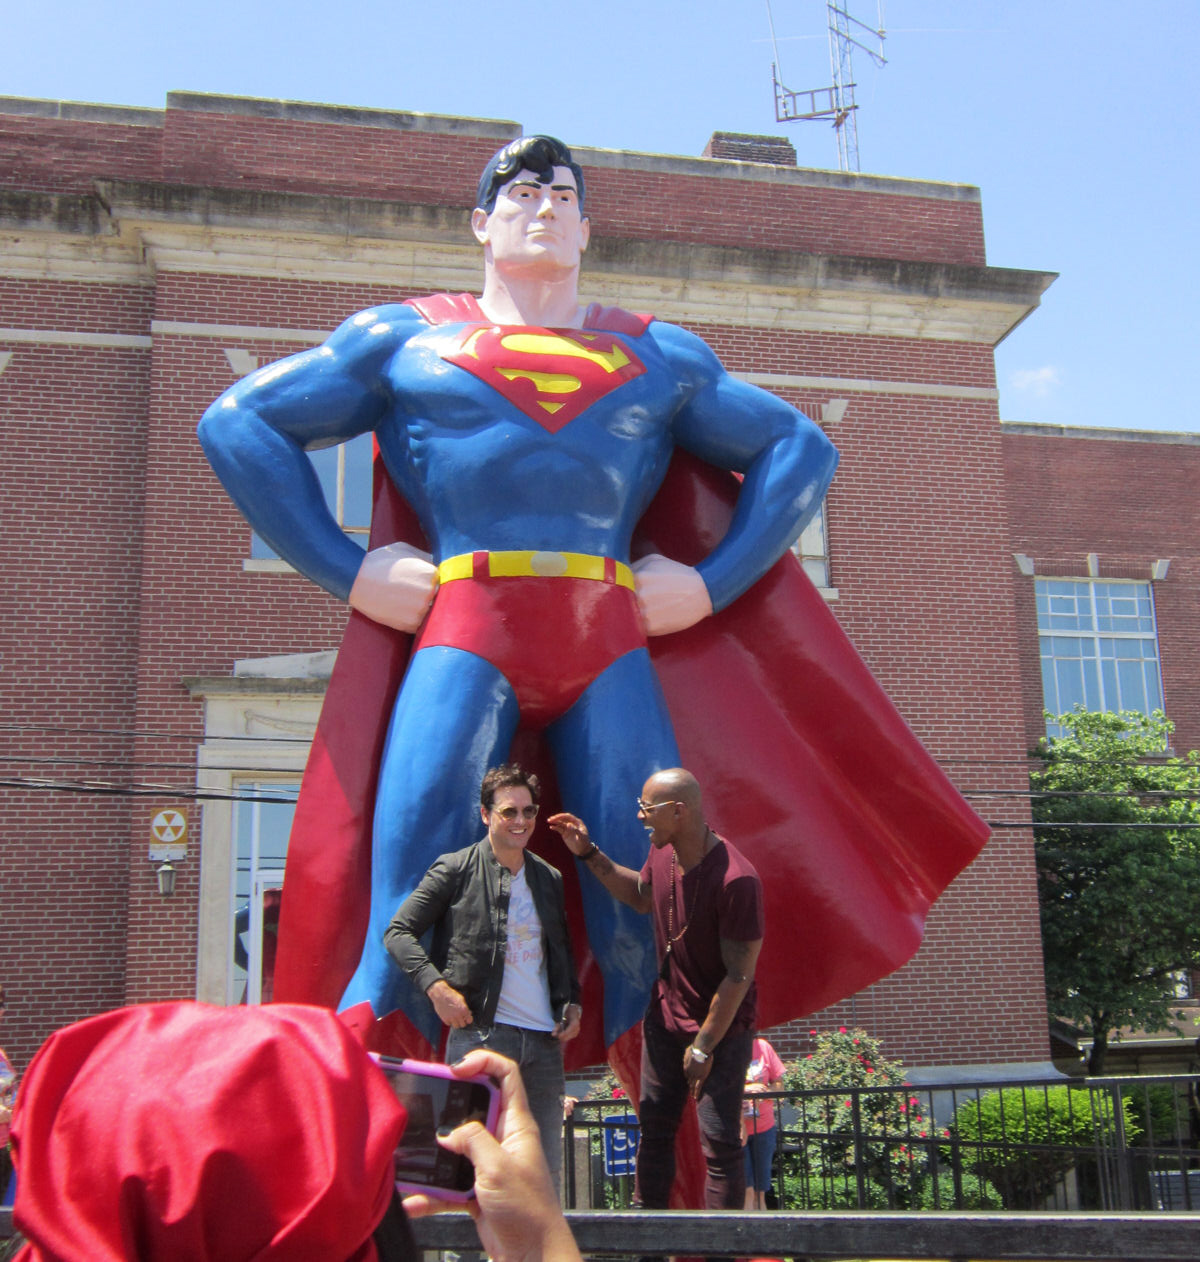 Before And After Merging Two Rooms Has Created A Super: Superman Celebration 2016 Photos #1: The Guys From